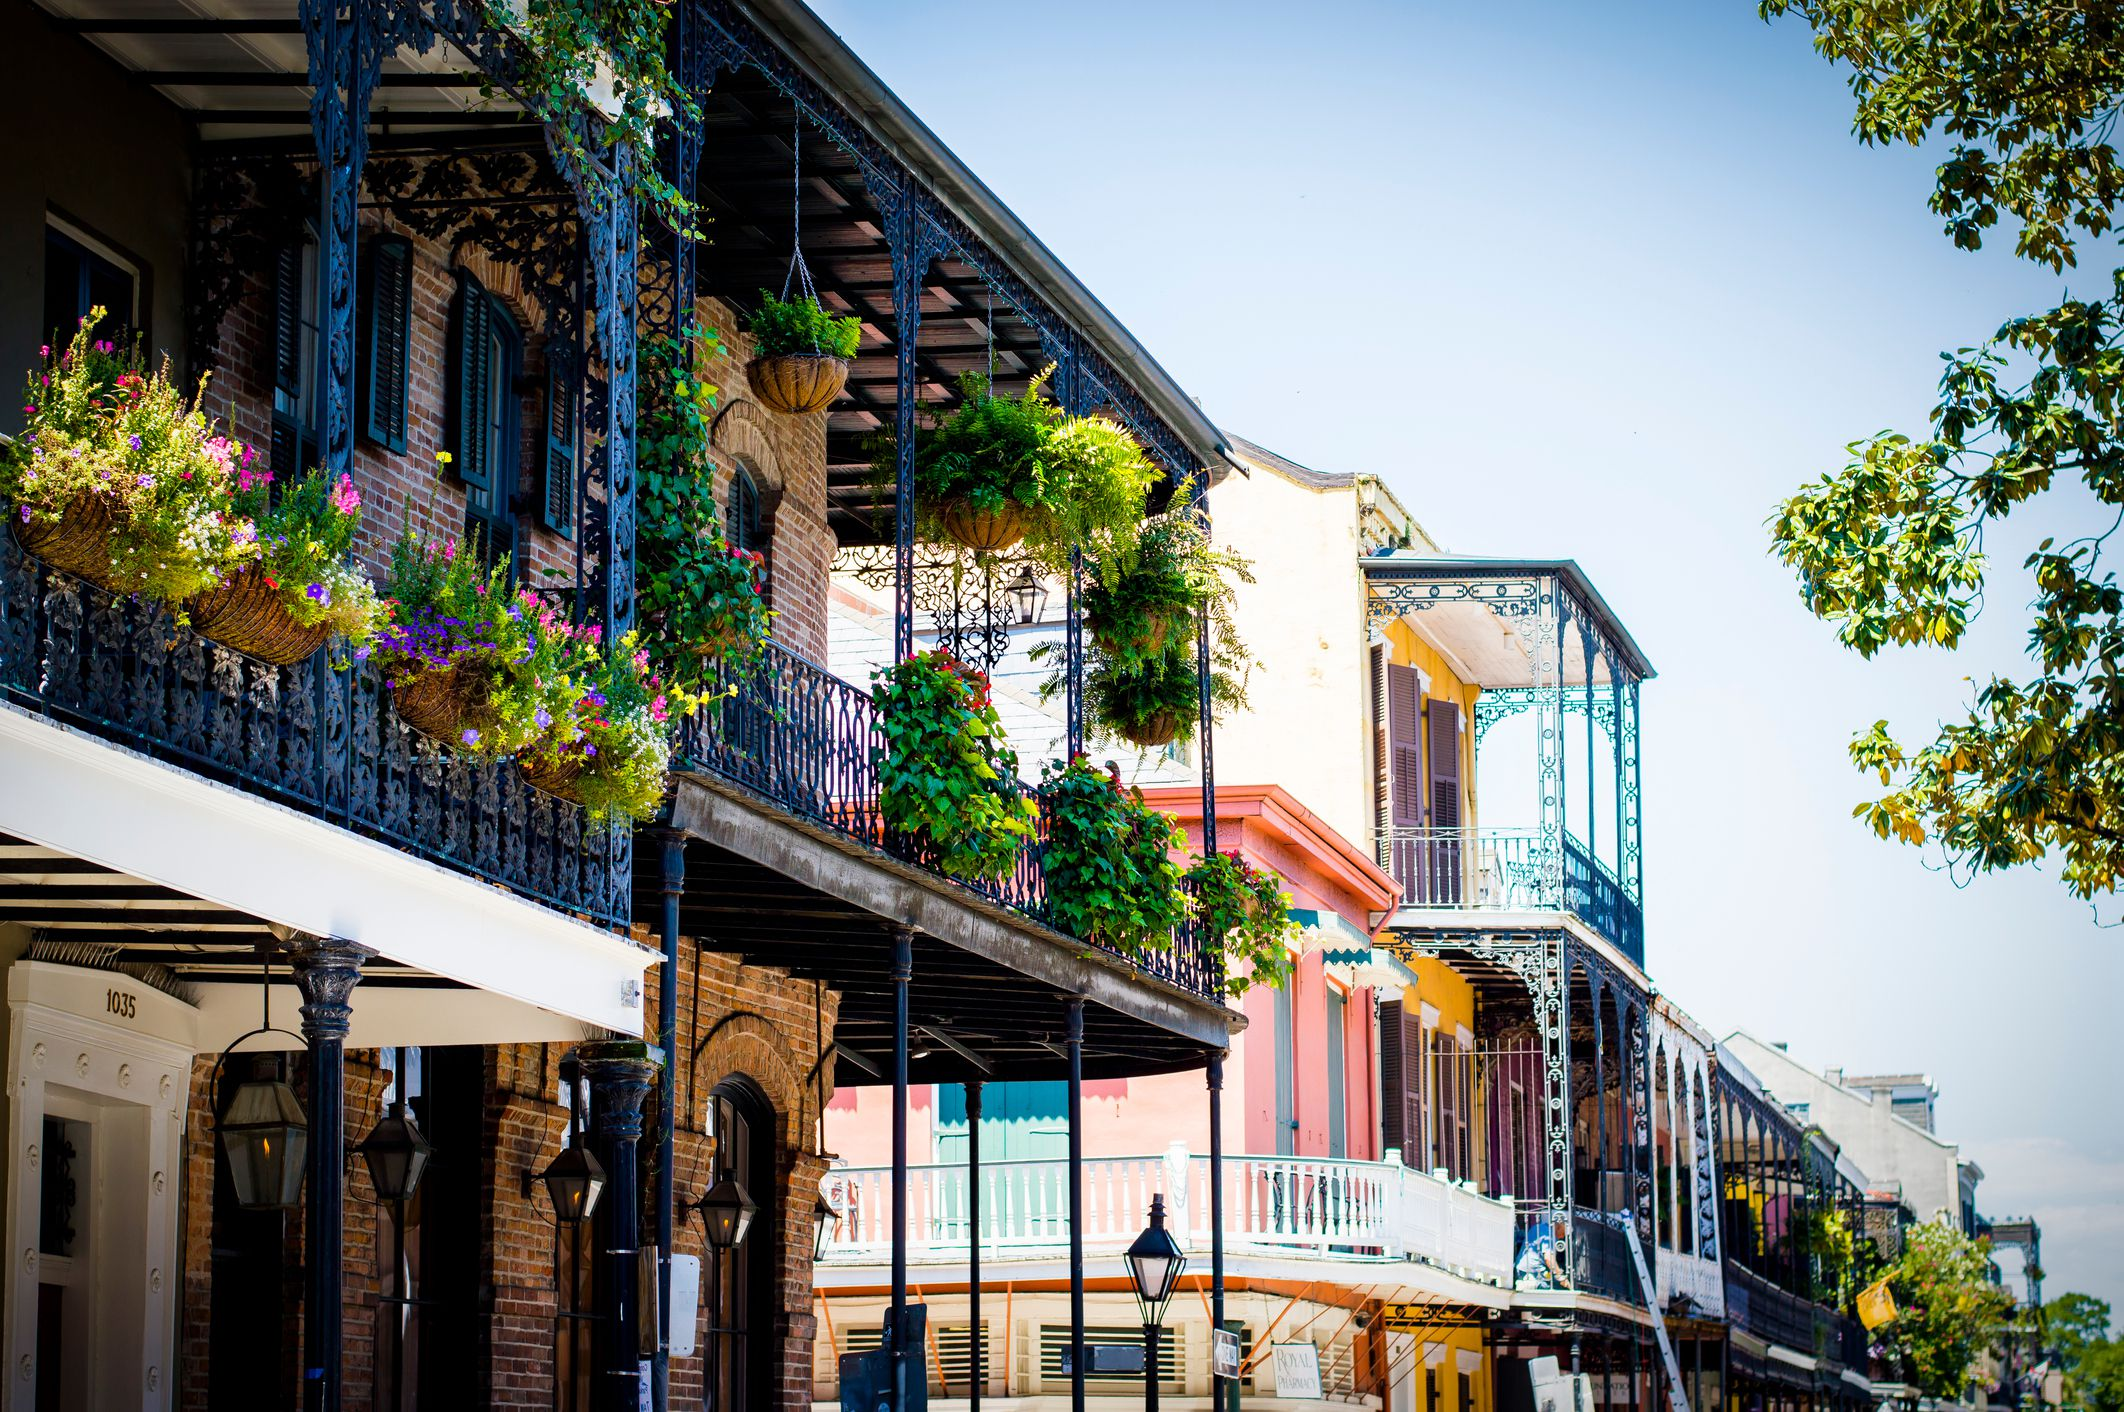 French Quarter buildings in New Orleans